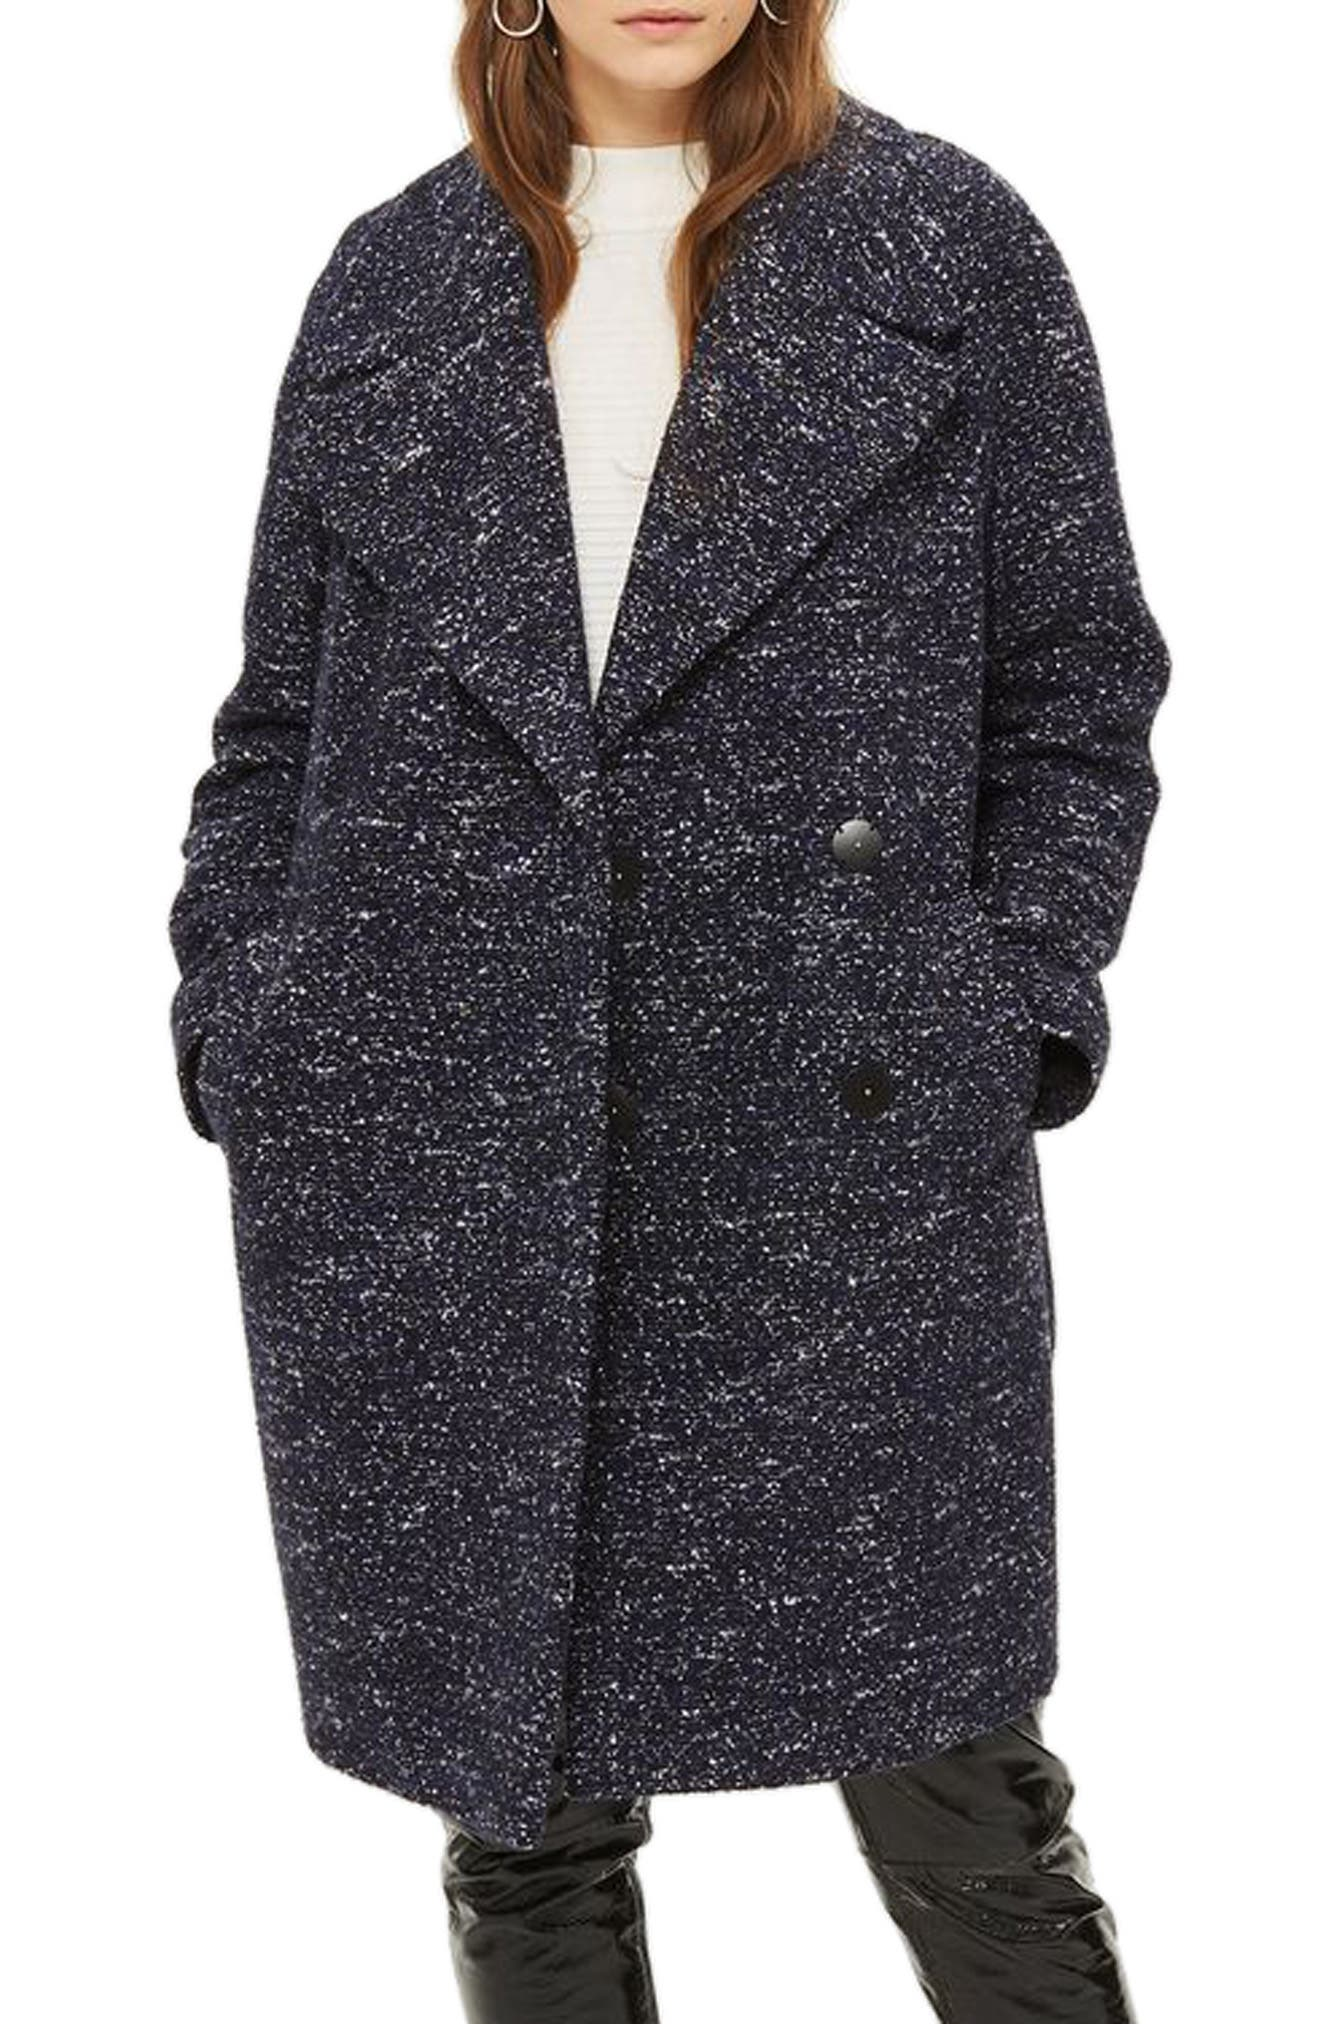 Bouclé Cocoon Coat,                             Main thumbnail 1, color,                             Navy Blue Multi